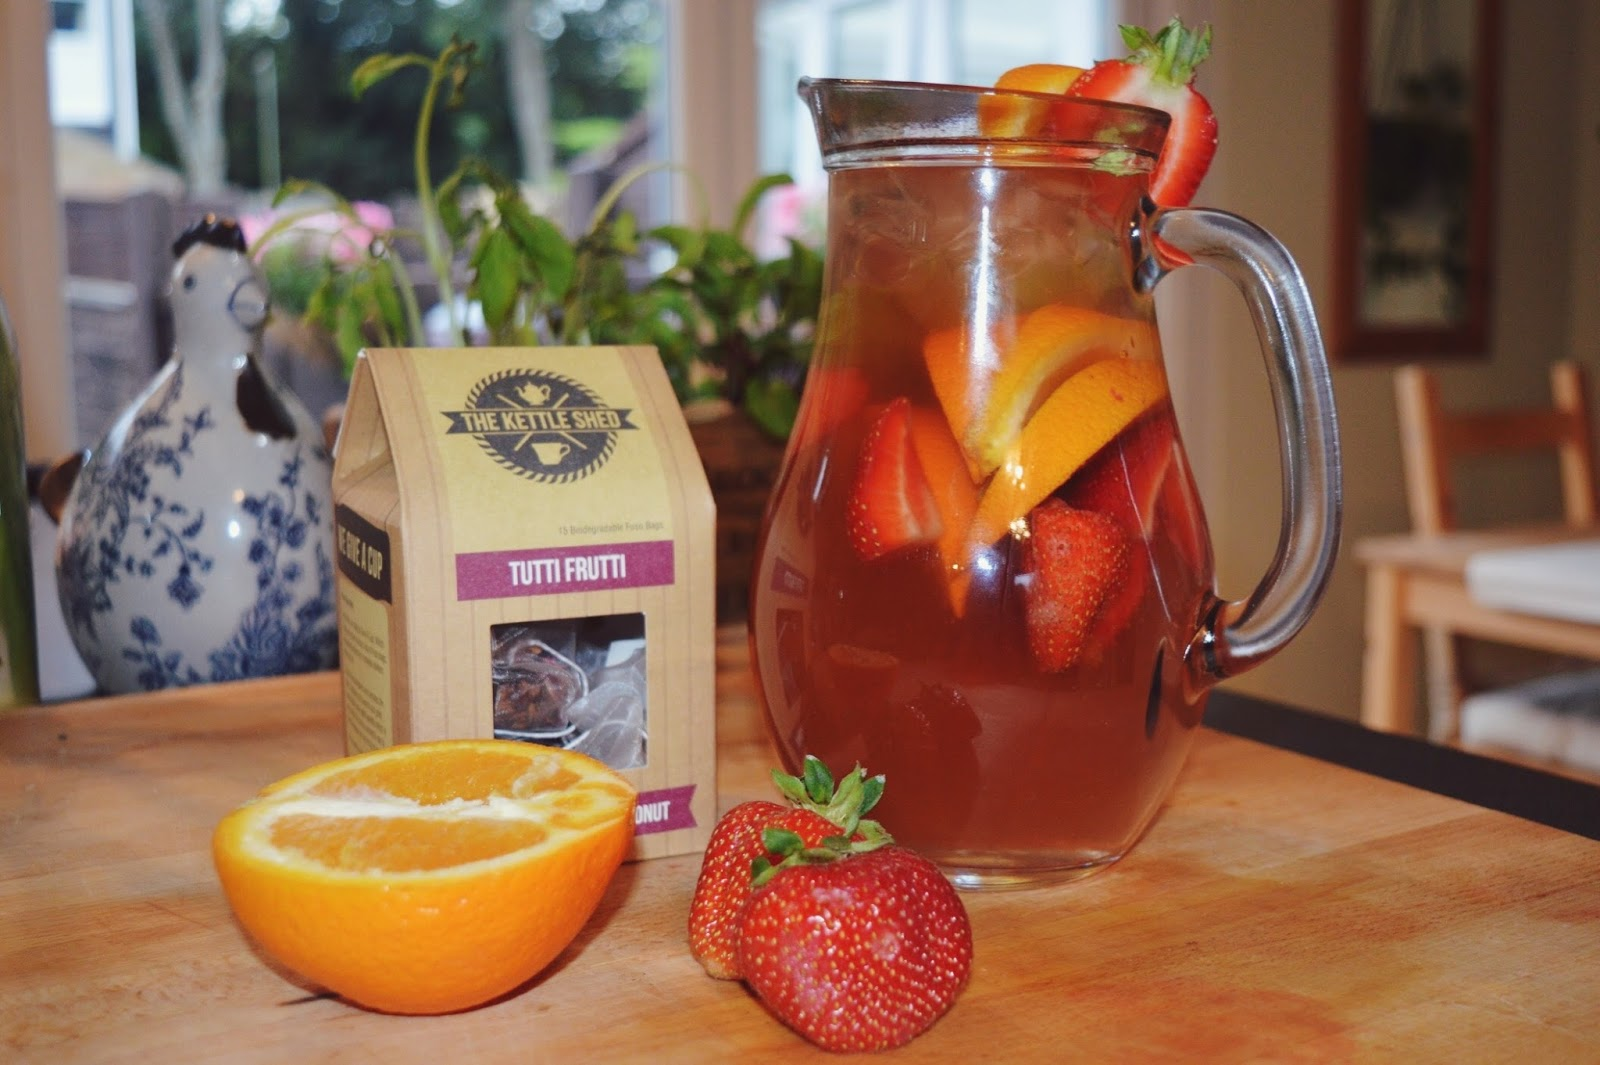 Ice tea recipe, Tutti Frutti tea The Kettle Shed, food bloggers, FashionFake